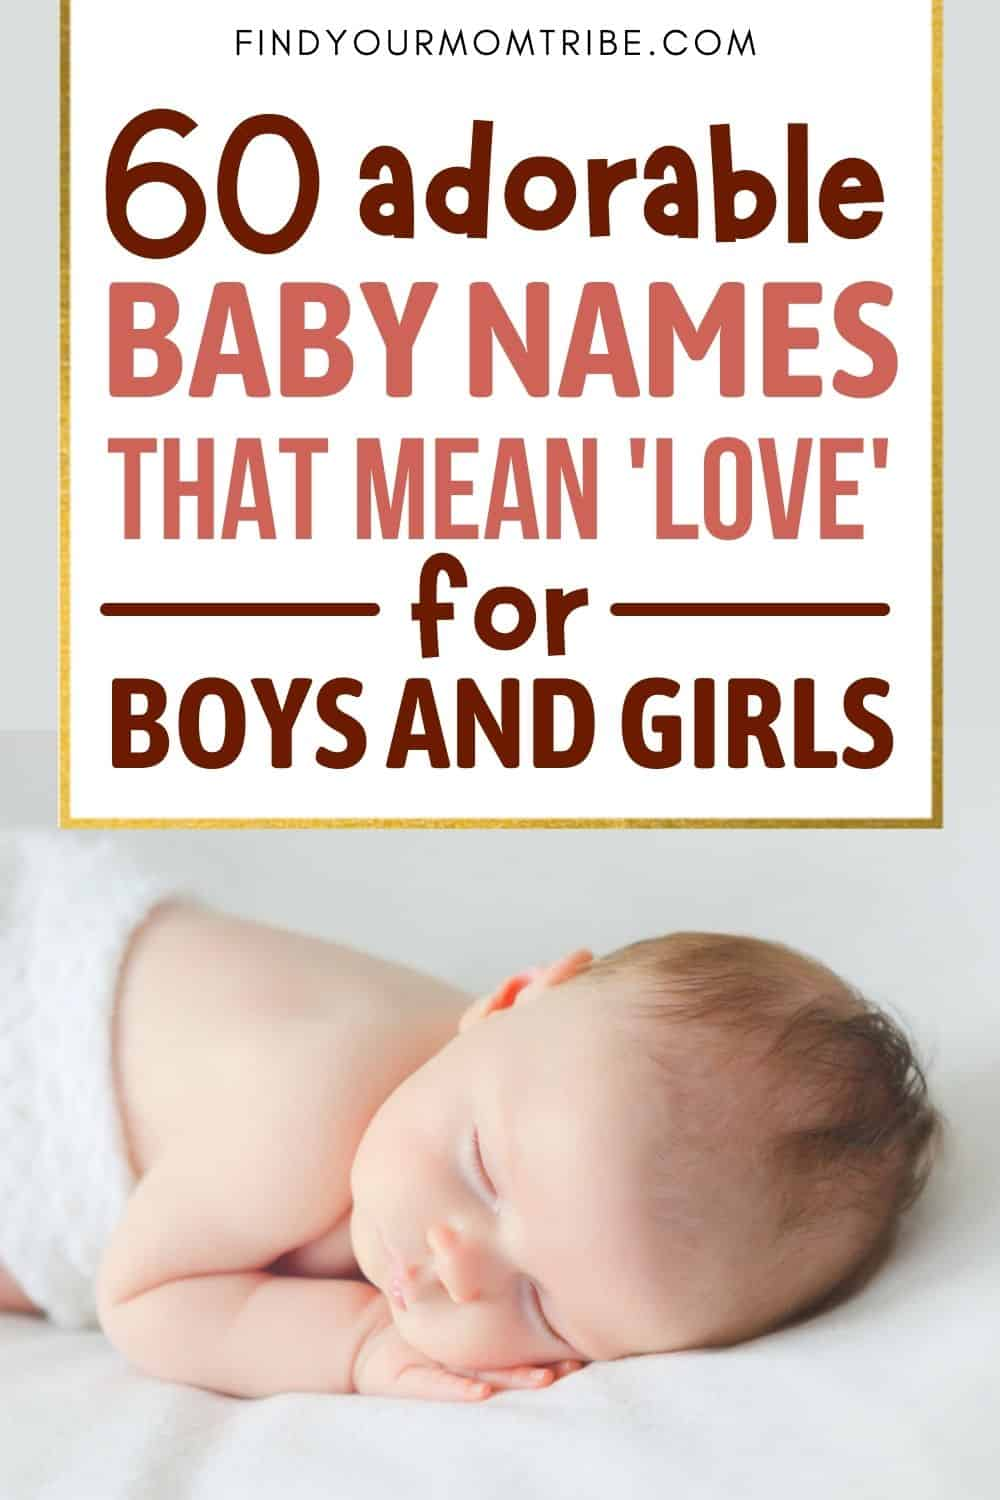 60 Adorable Baby Names That Mean Love For Boys And Girls